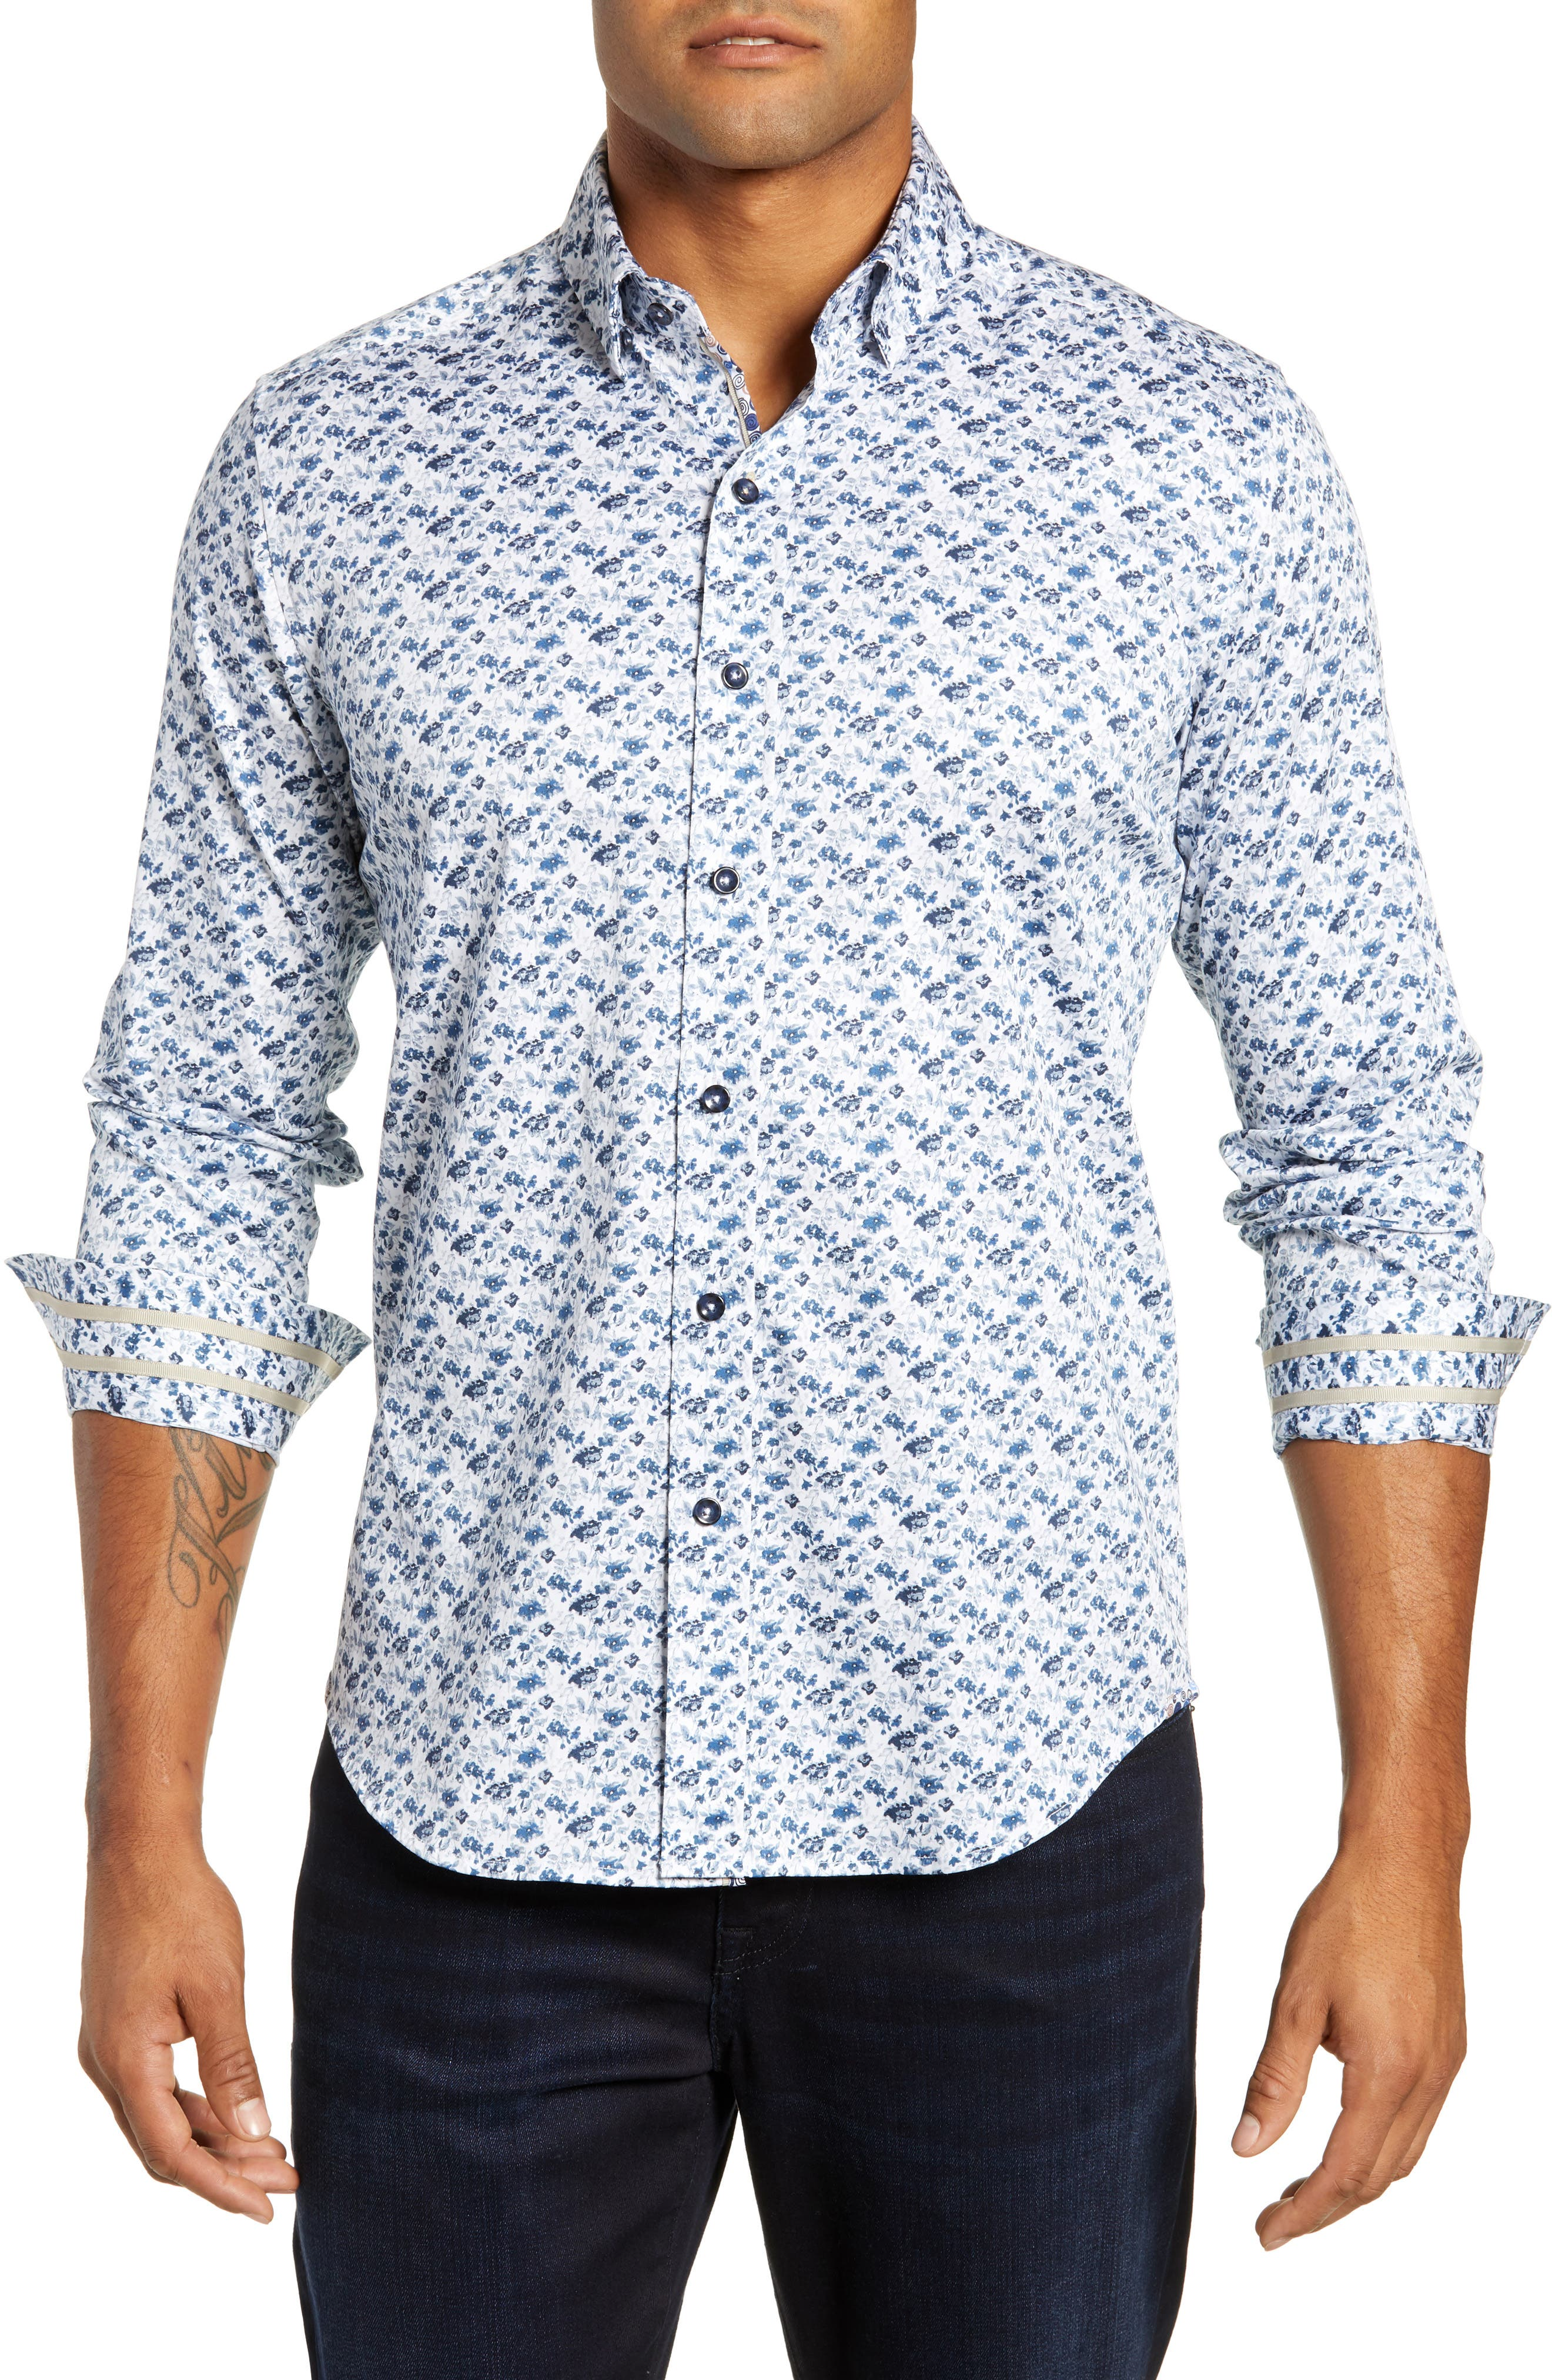 Tiller Tailored Fit Sport Shirt,                             Main thumbnail 1, color,                             WHITE